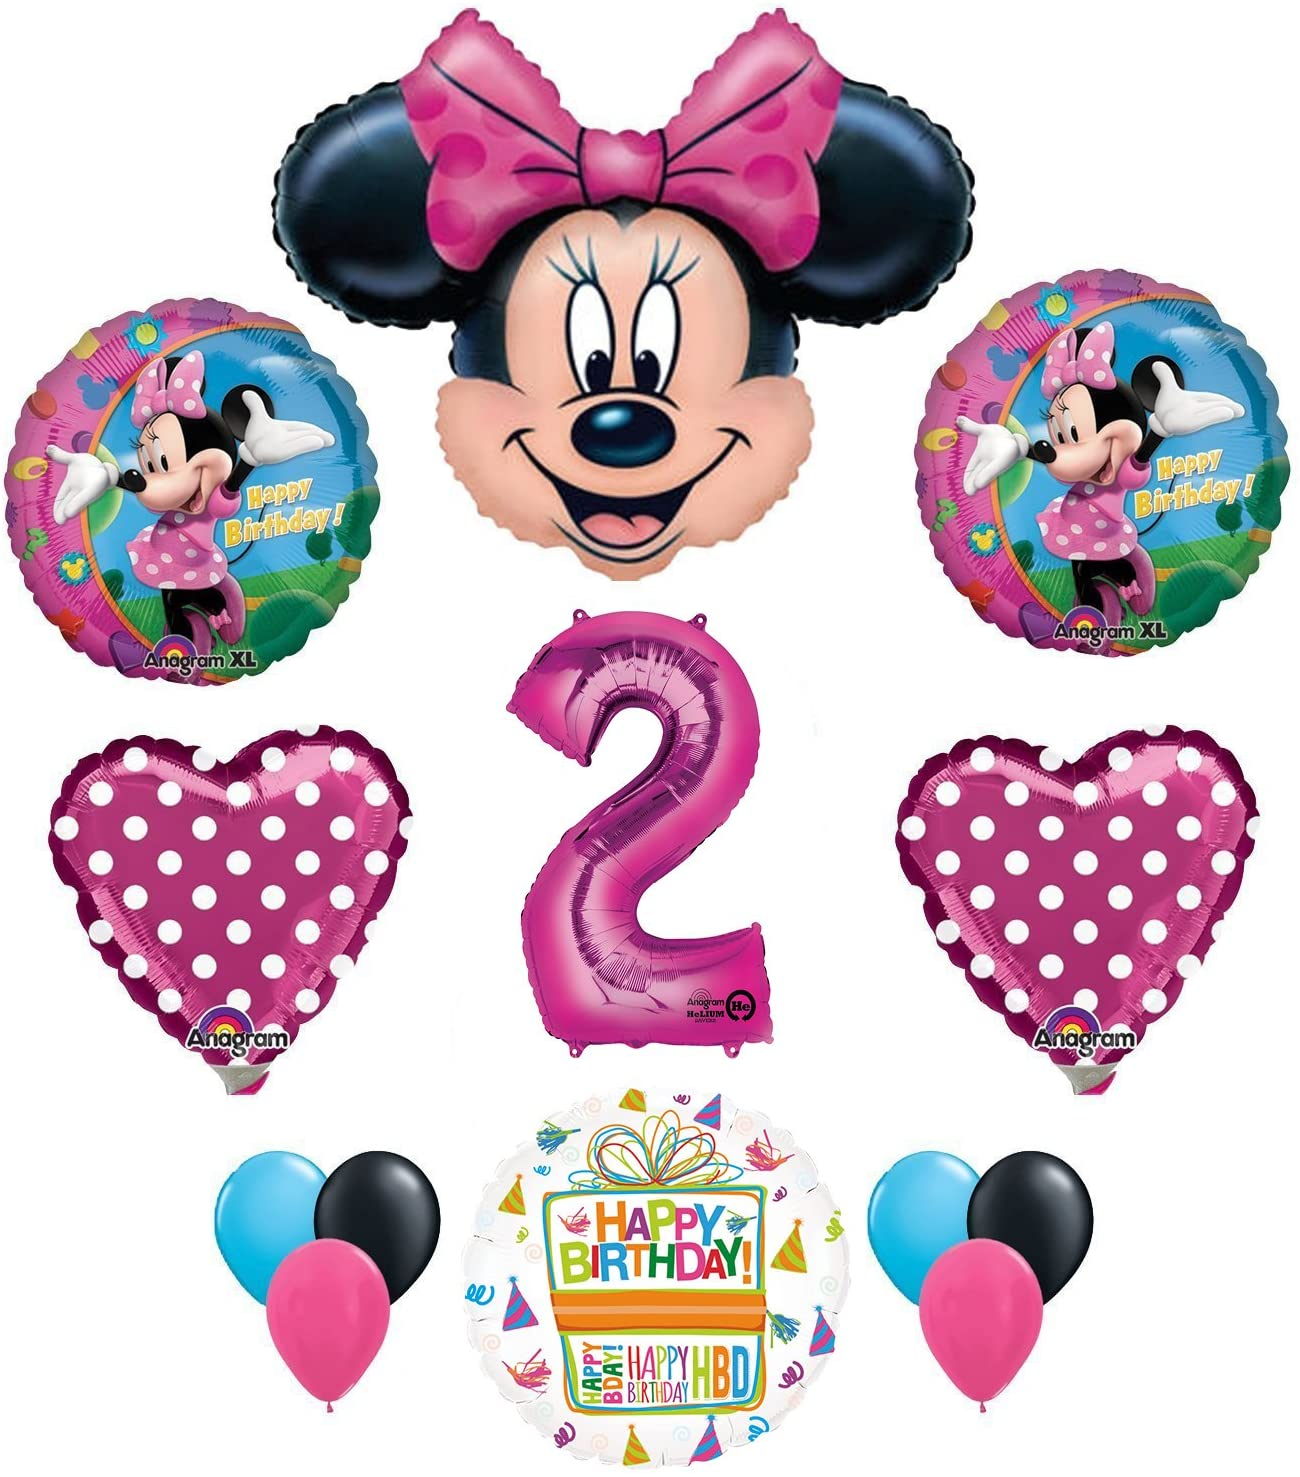 Mayflower Products Minnie Mouse 2nd Birthday Party Supplies and Pink Bow 13 pc Balloon Decorations